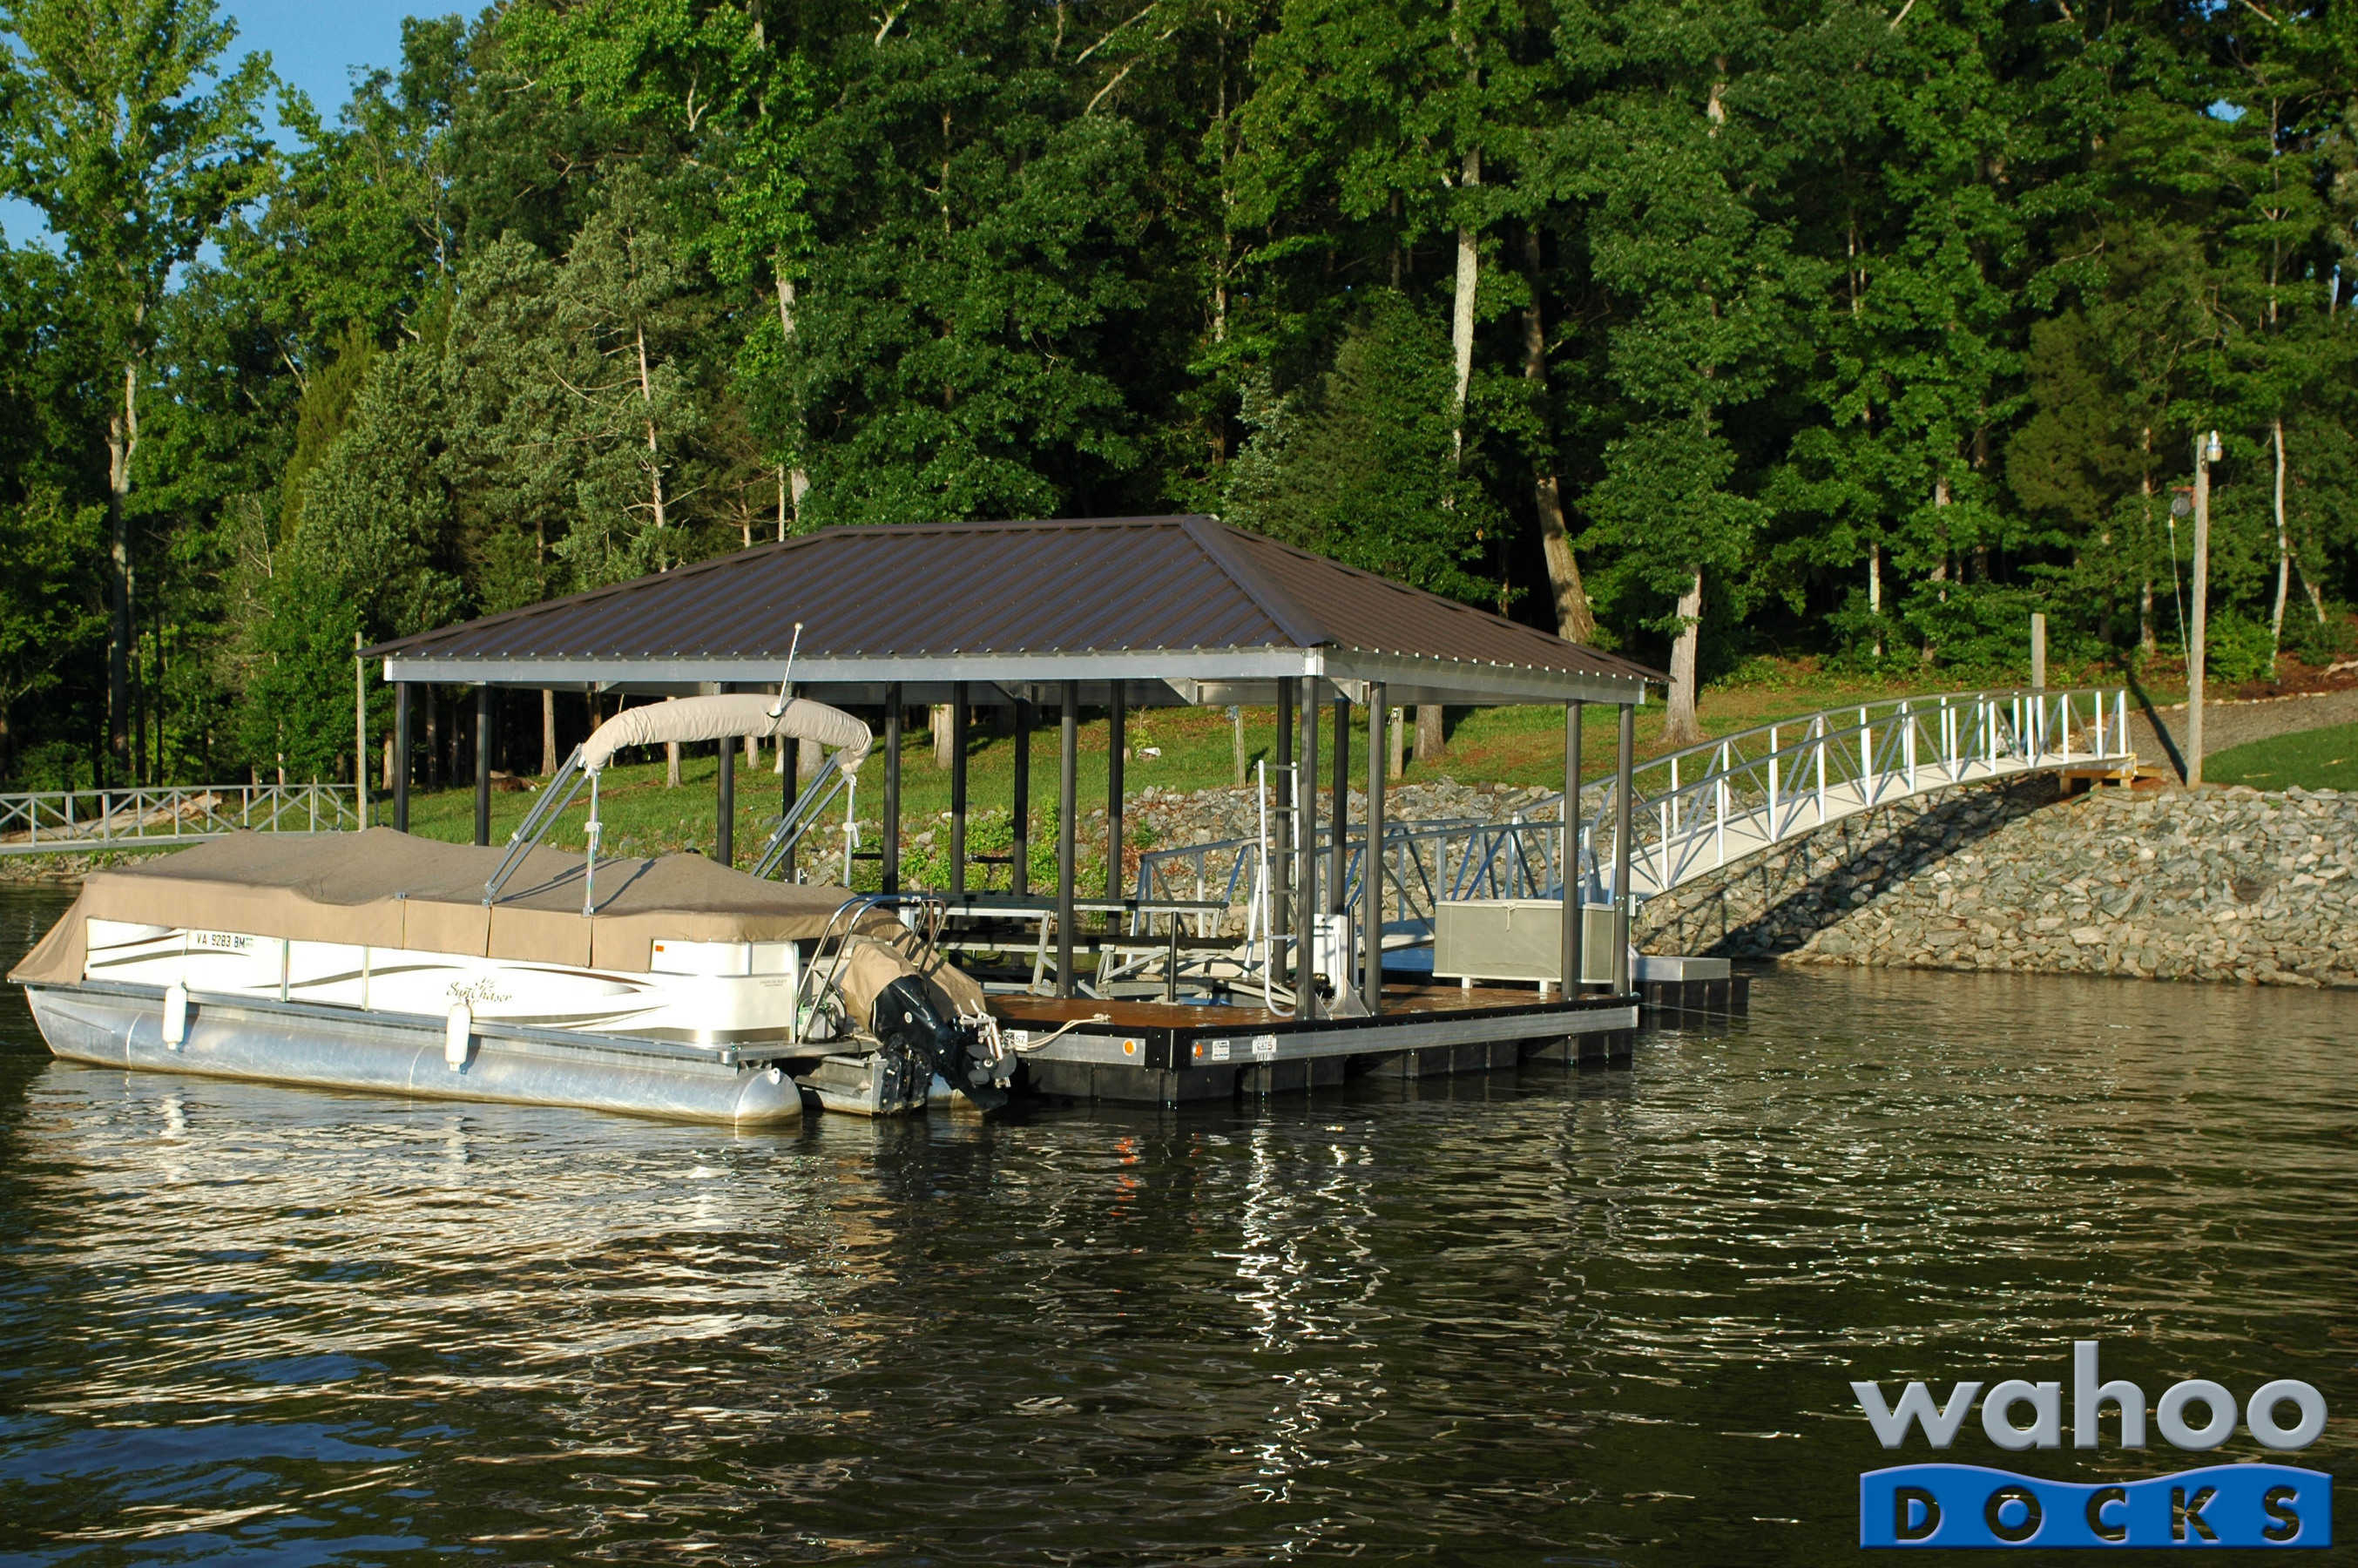 Wahoo-Dock-Garland-June-2013-6